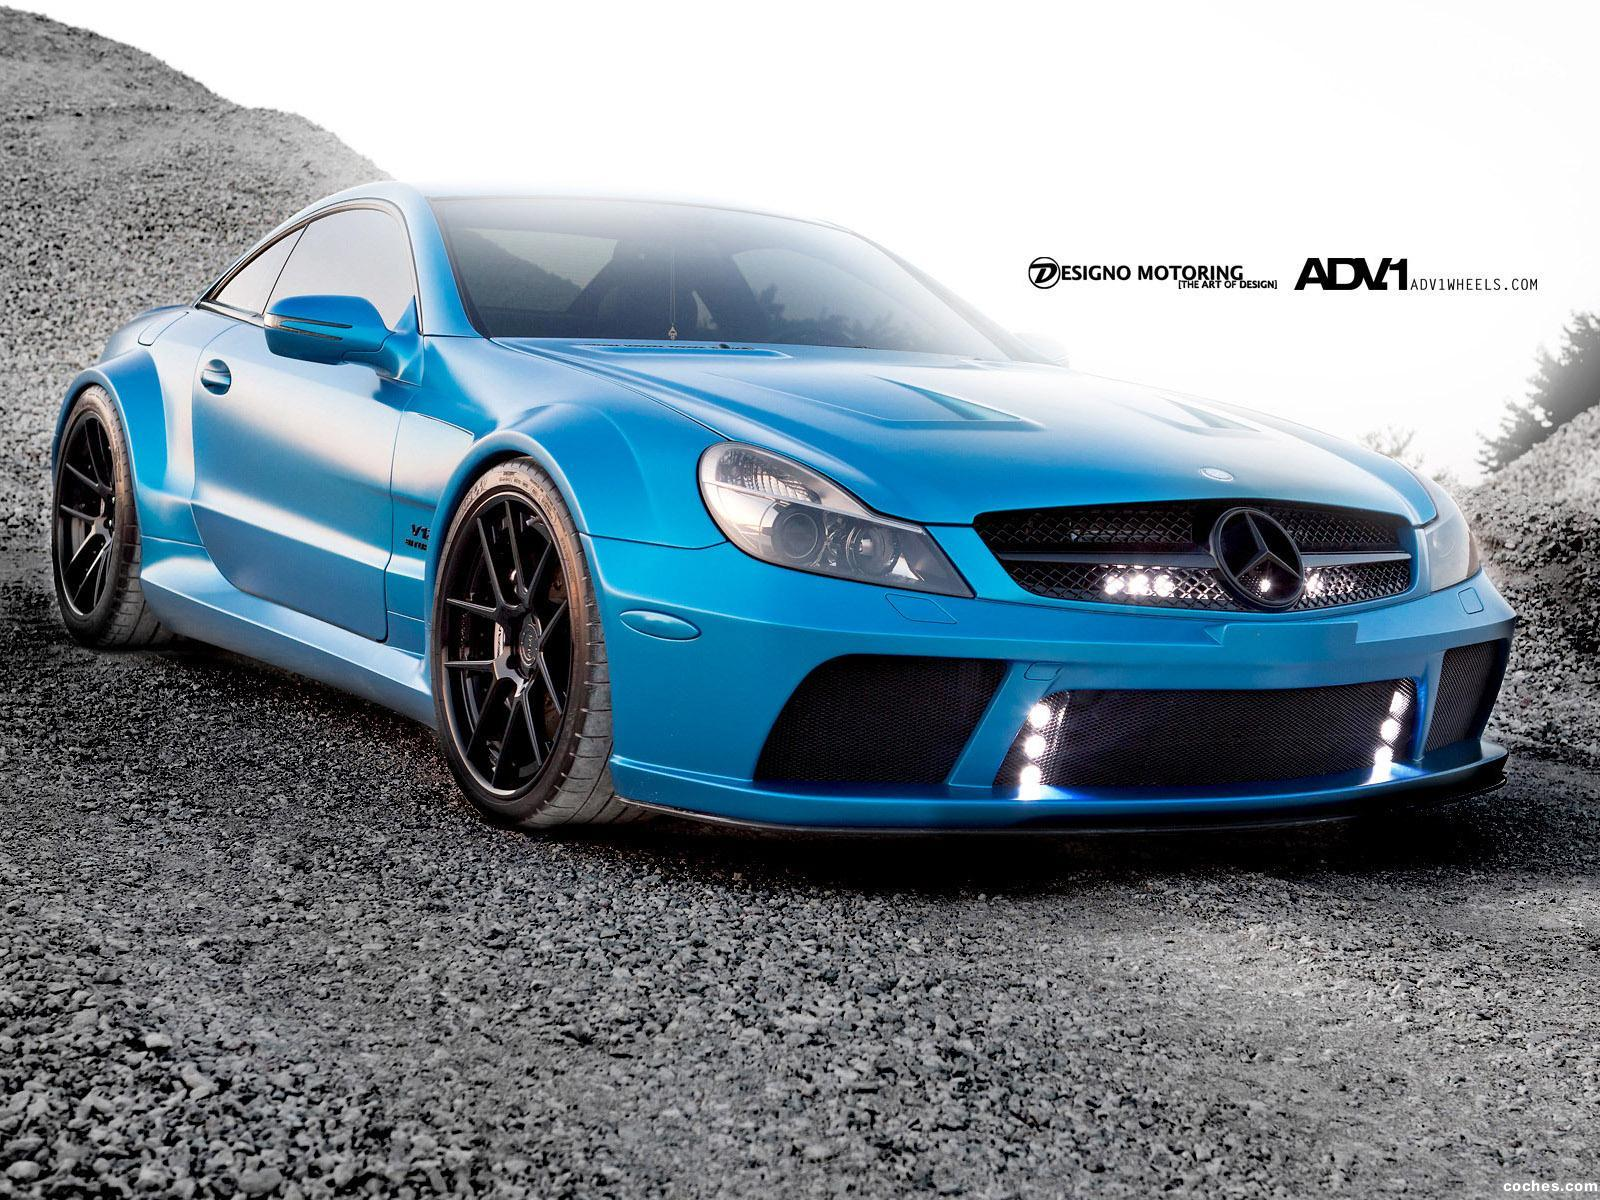 Foto 0 de Mercedes SL 65 AMG Black Series ADV.1 Wheels 2012